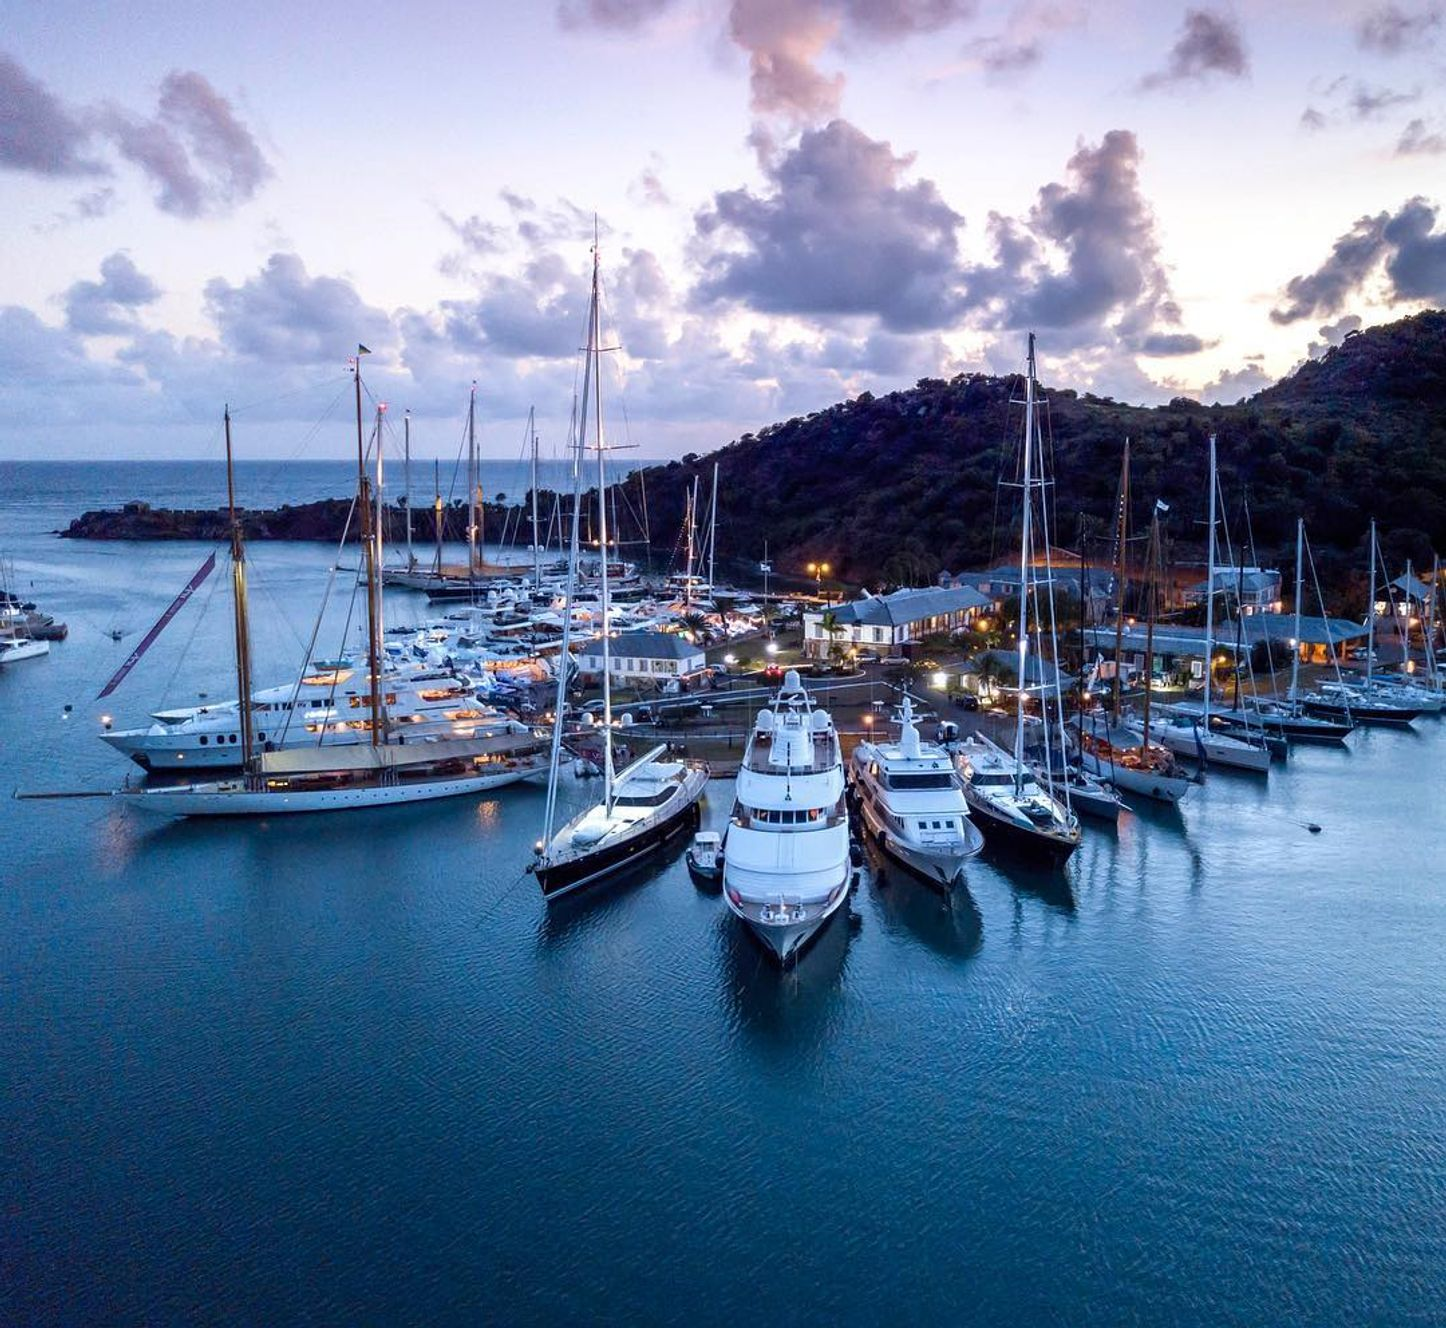 A collection of sailing yachts and motor yachts assembled at sunset for the Antigua Charter Yacht Show 2017